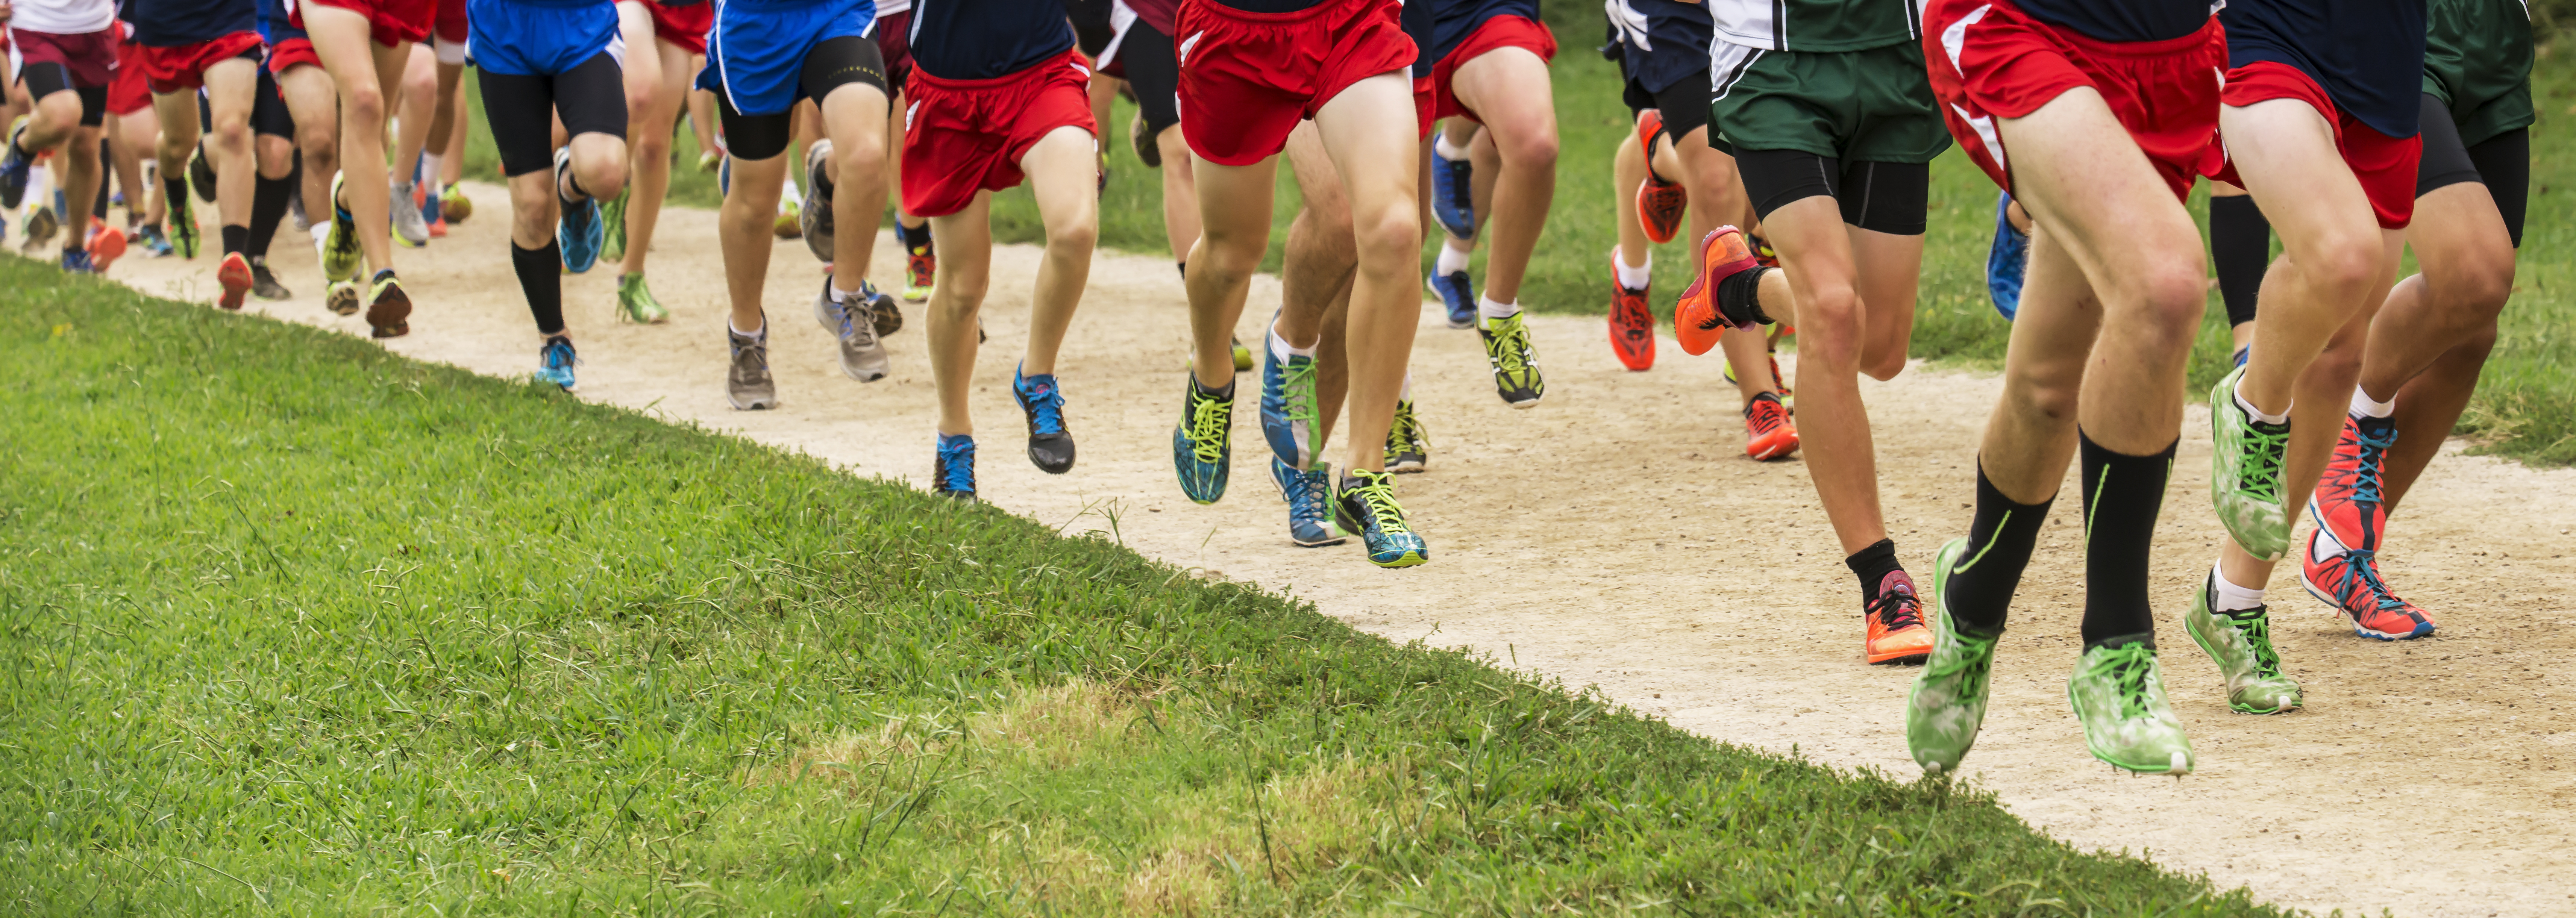 How To Train For Your 5k